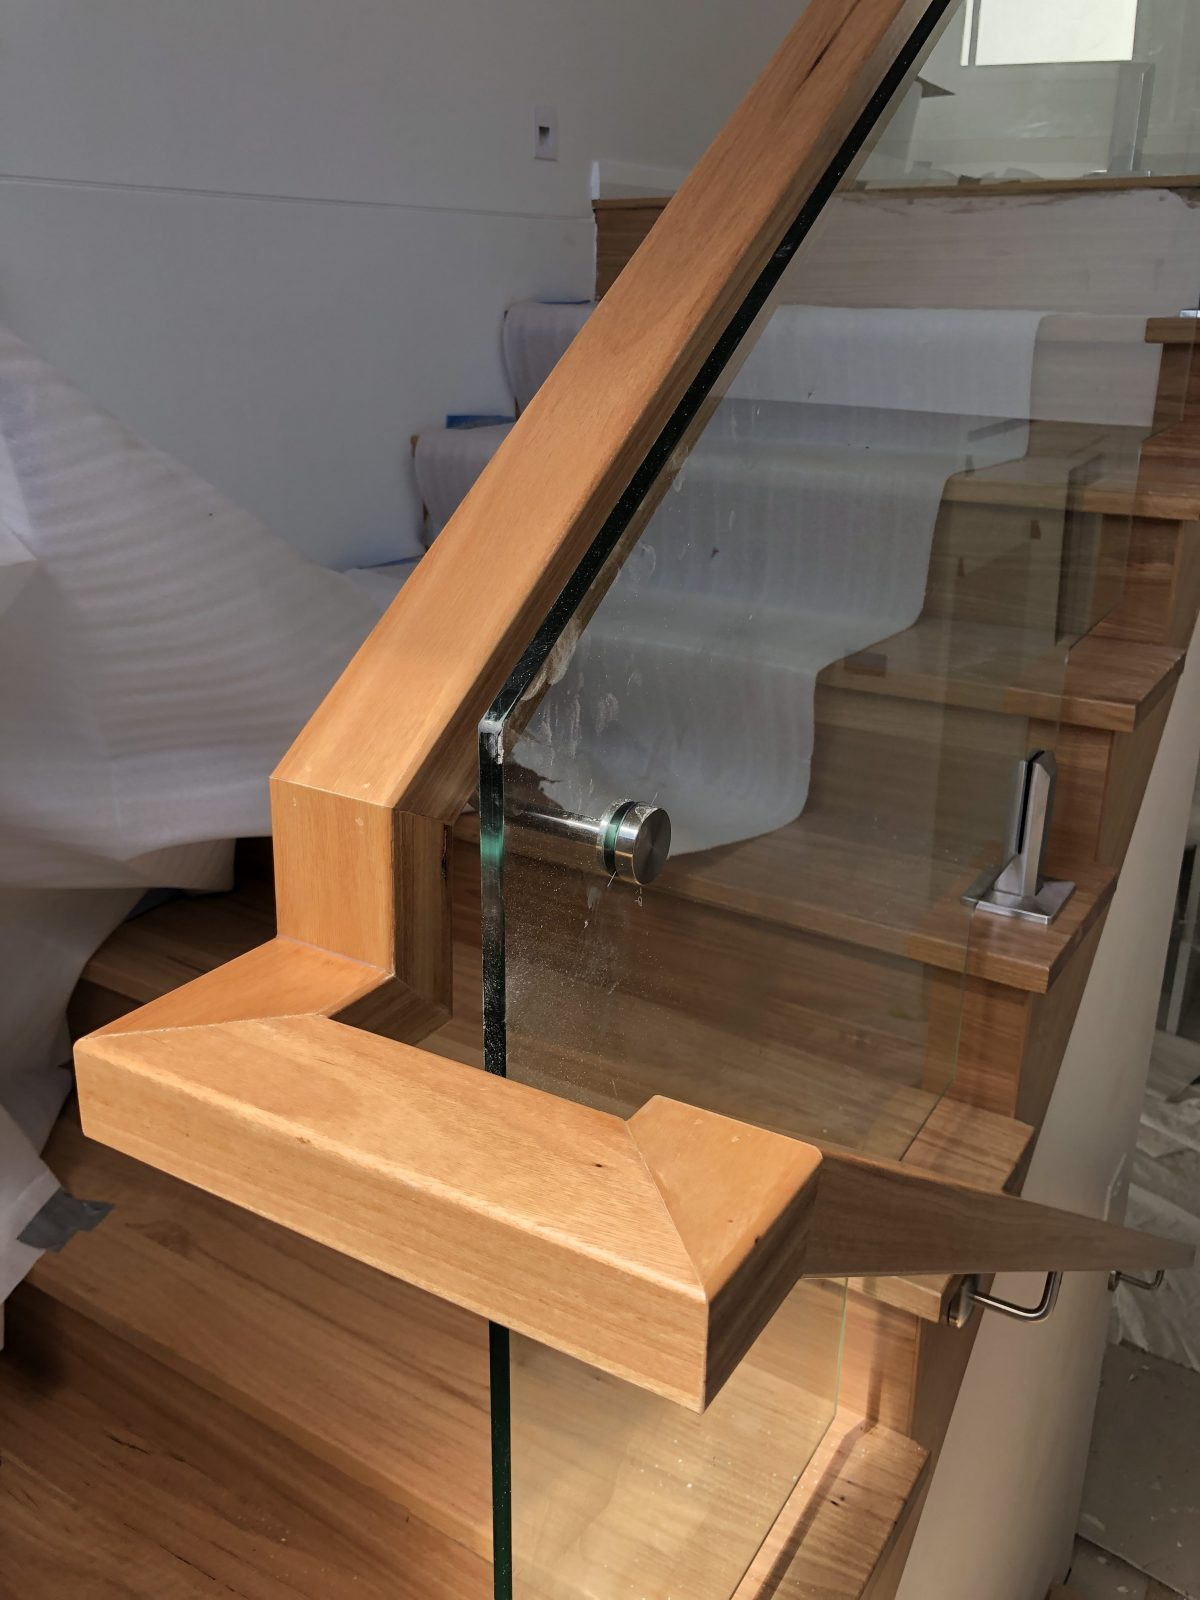 Bespoke handrail by Timber Floors Pty Ltd